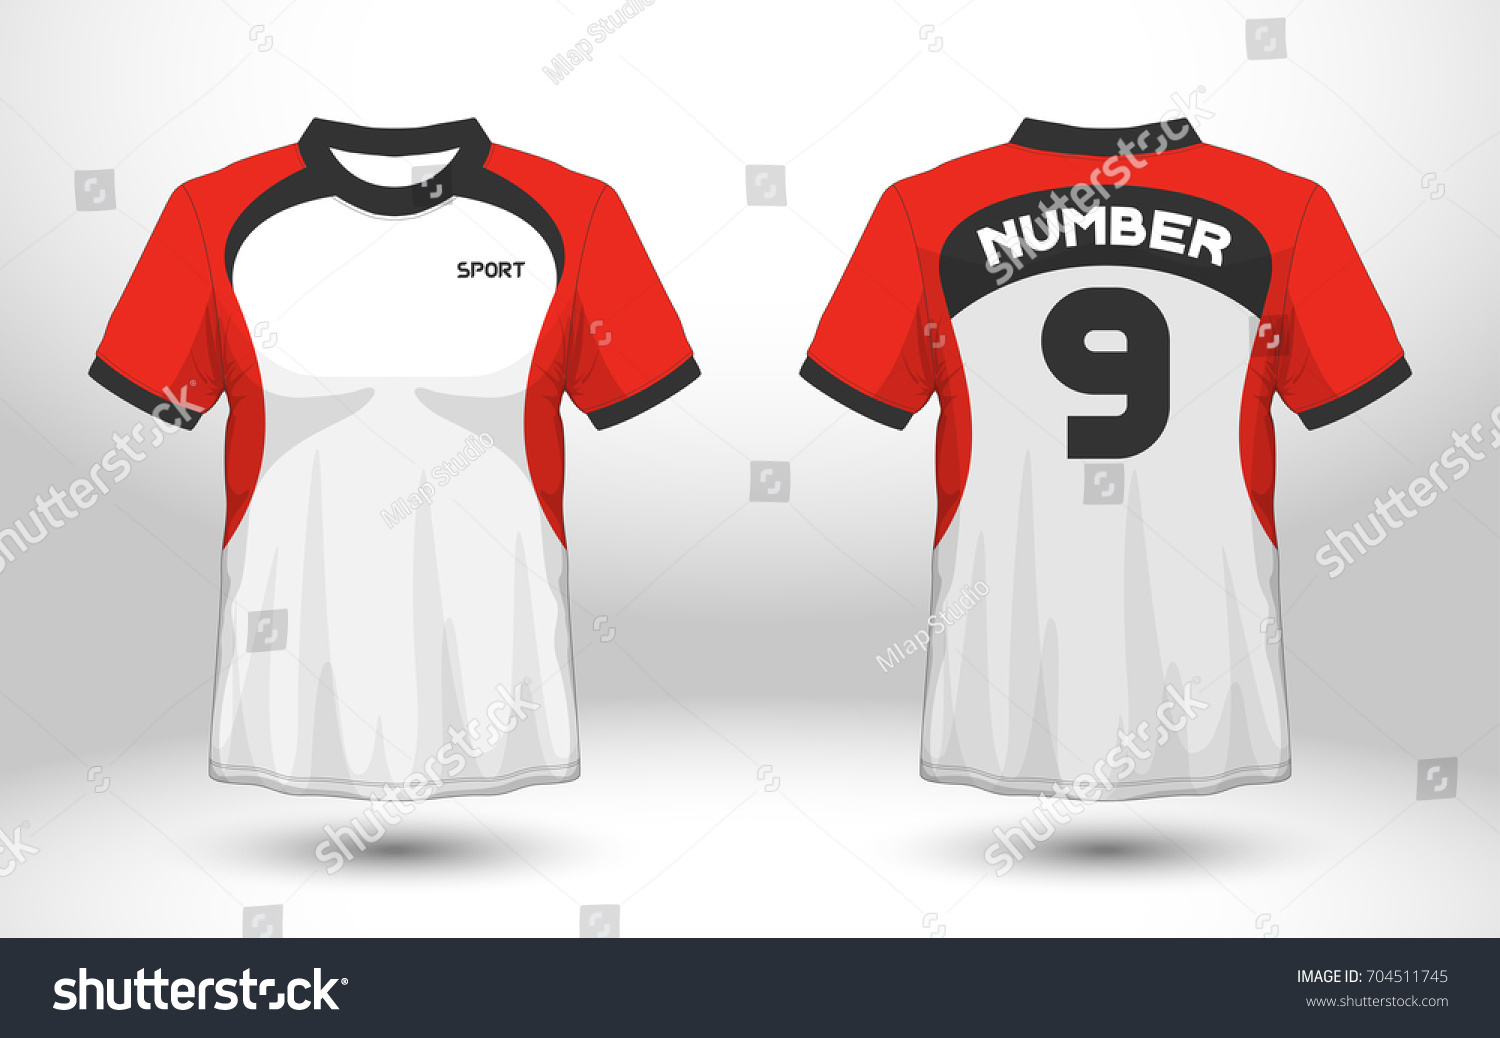 Sports T Shirt Design Templates Bcd Tofu House